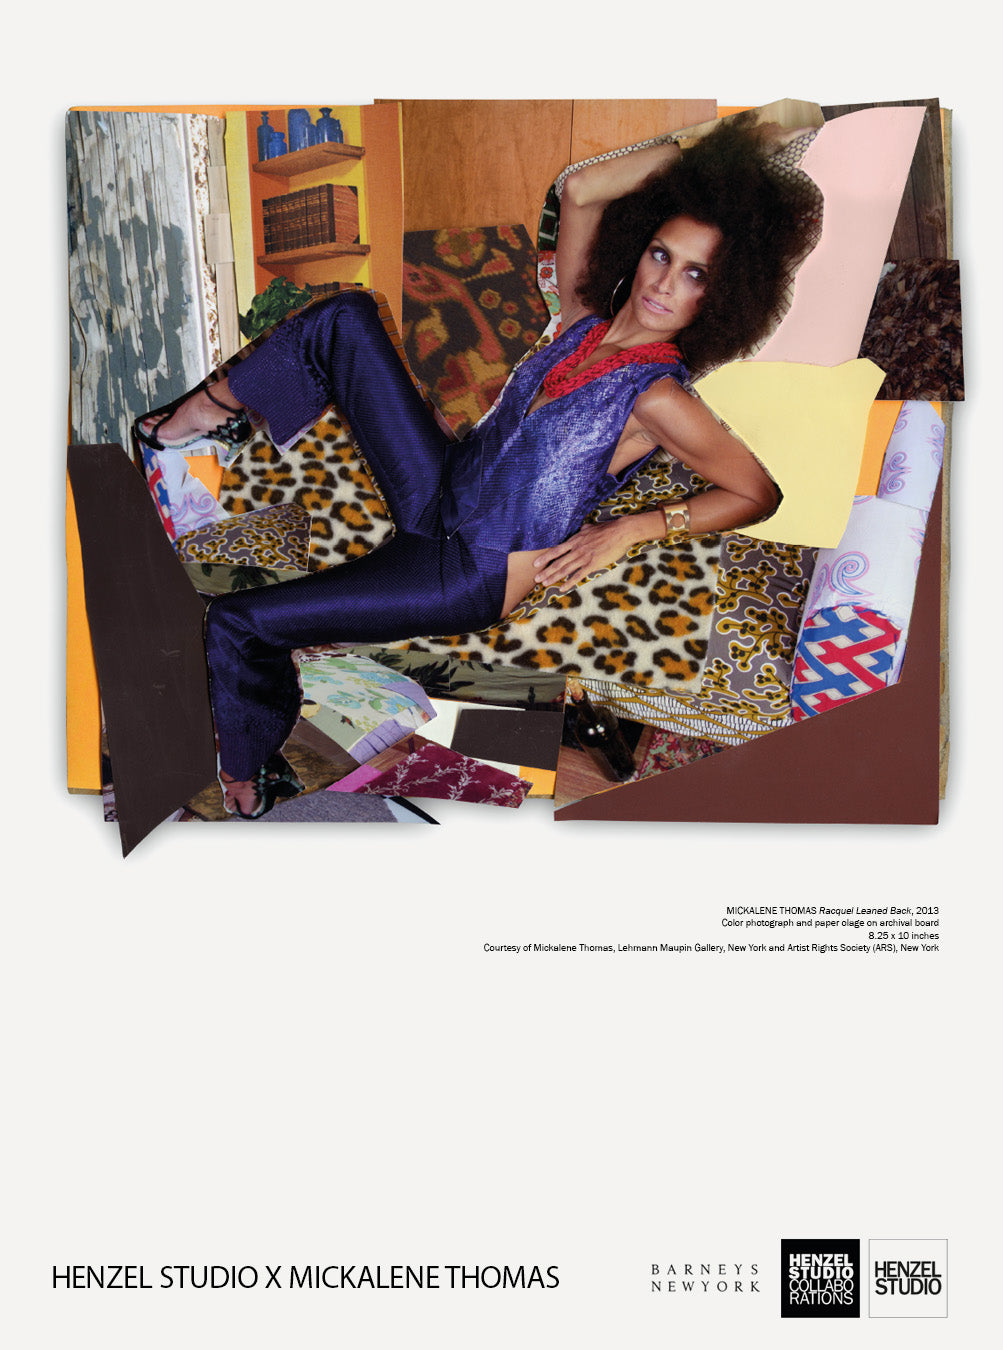 NAN GOLDIN AND MICKALENE THOMAS SELECTED AS THE YEAR'S MOST INFLUENTIAL ARTISTS